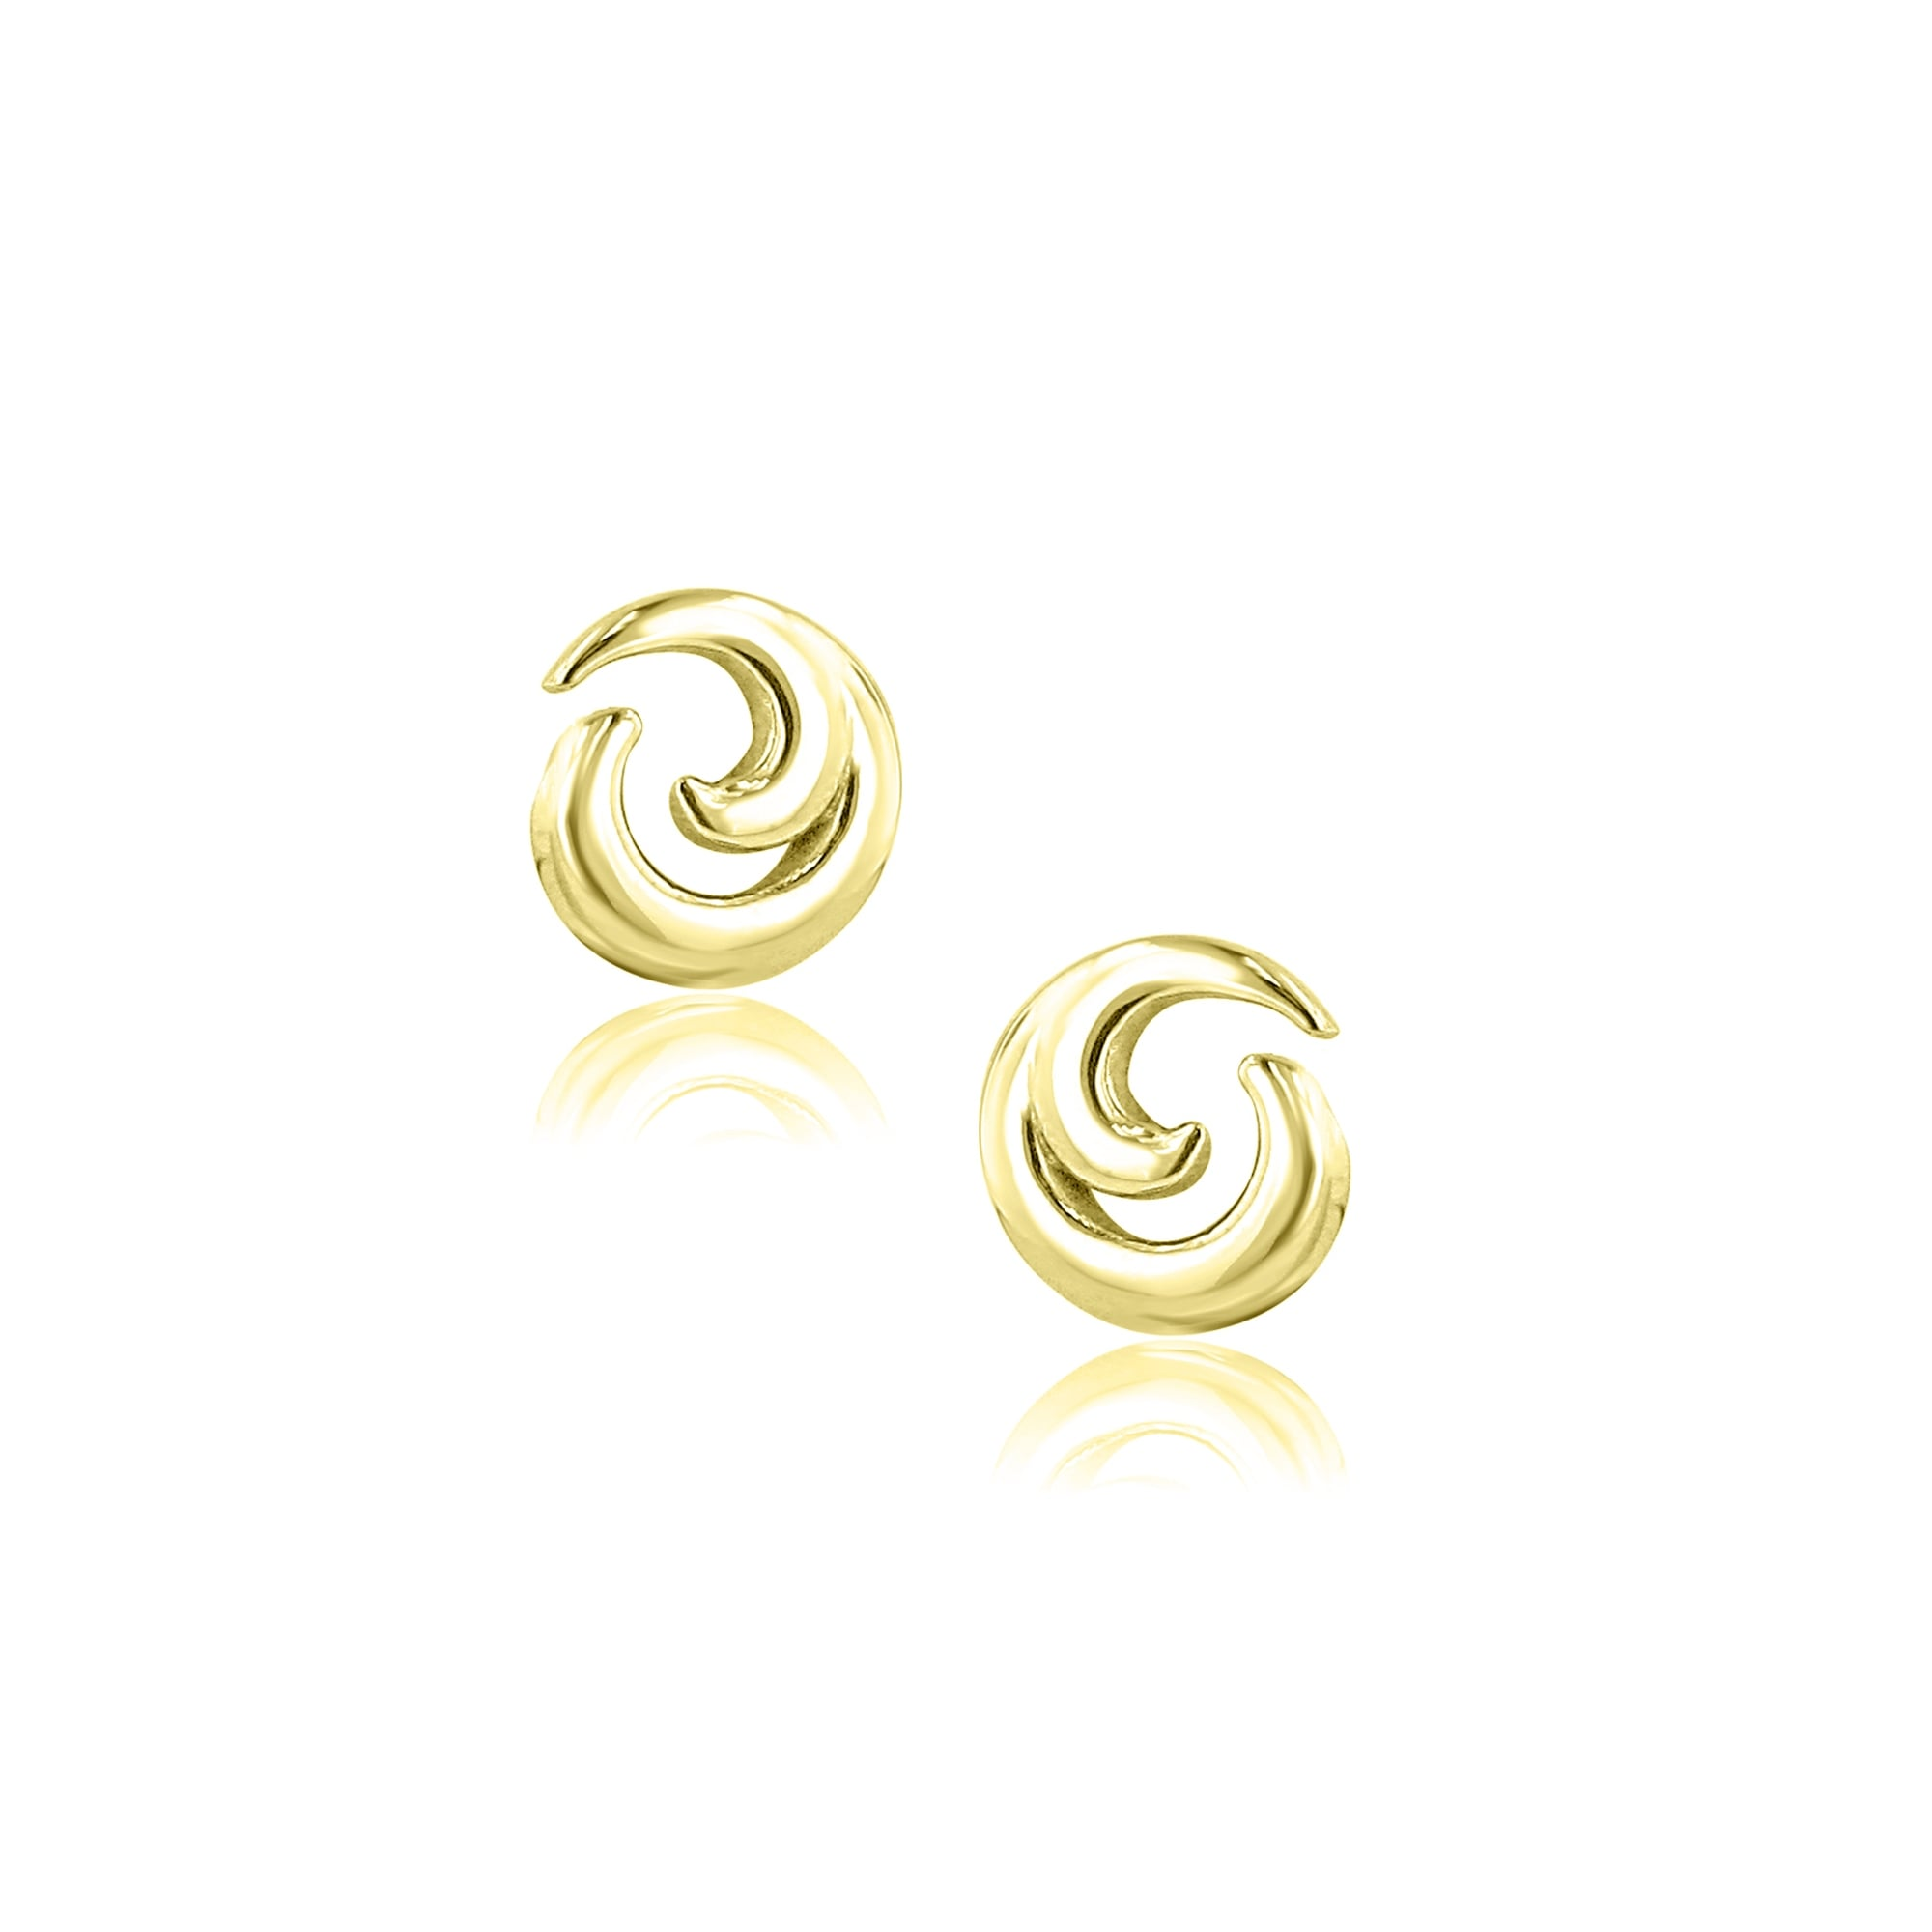 range ebs jewellery user reviews based ratings of stud blond out earrings classical on